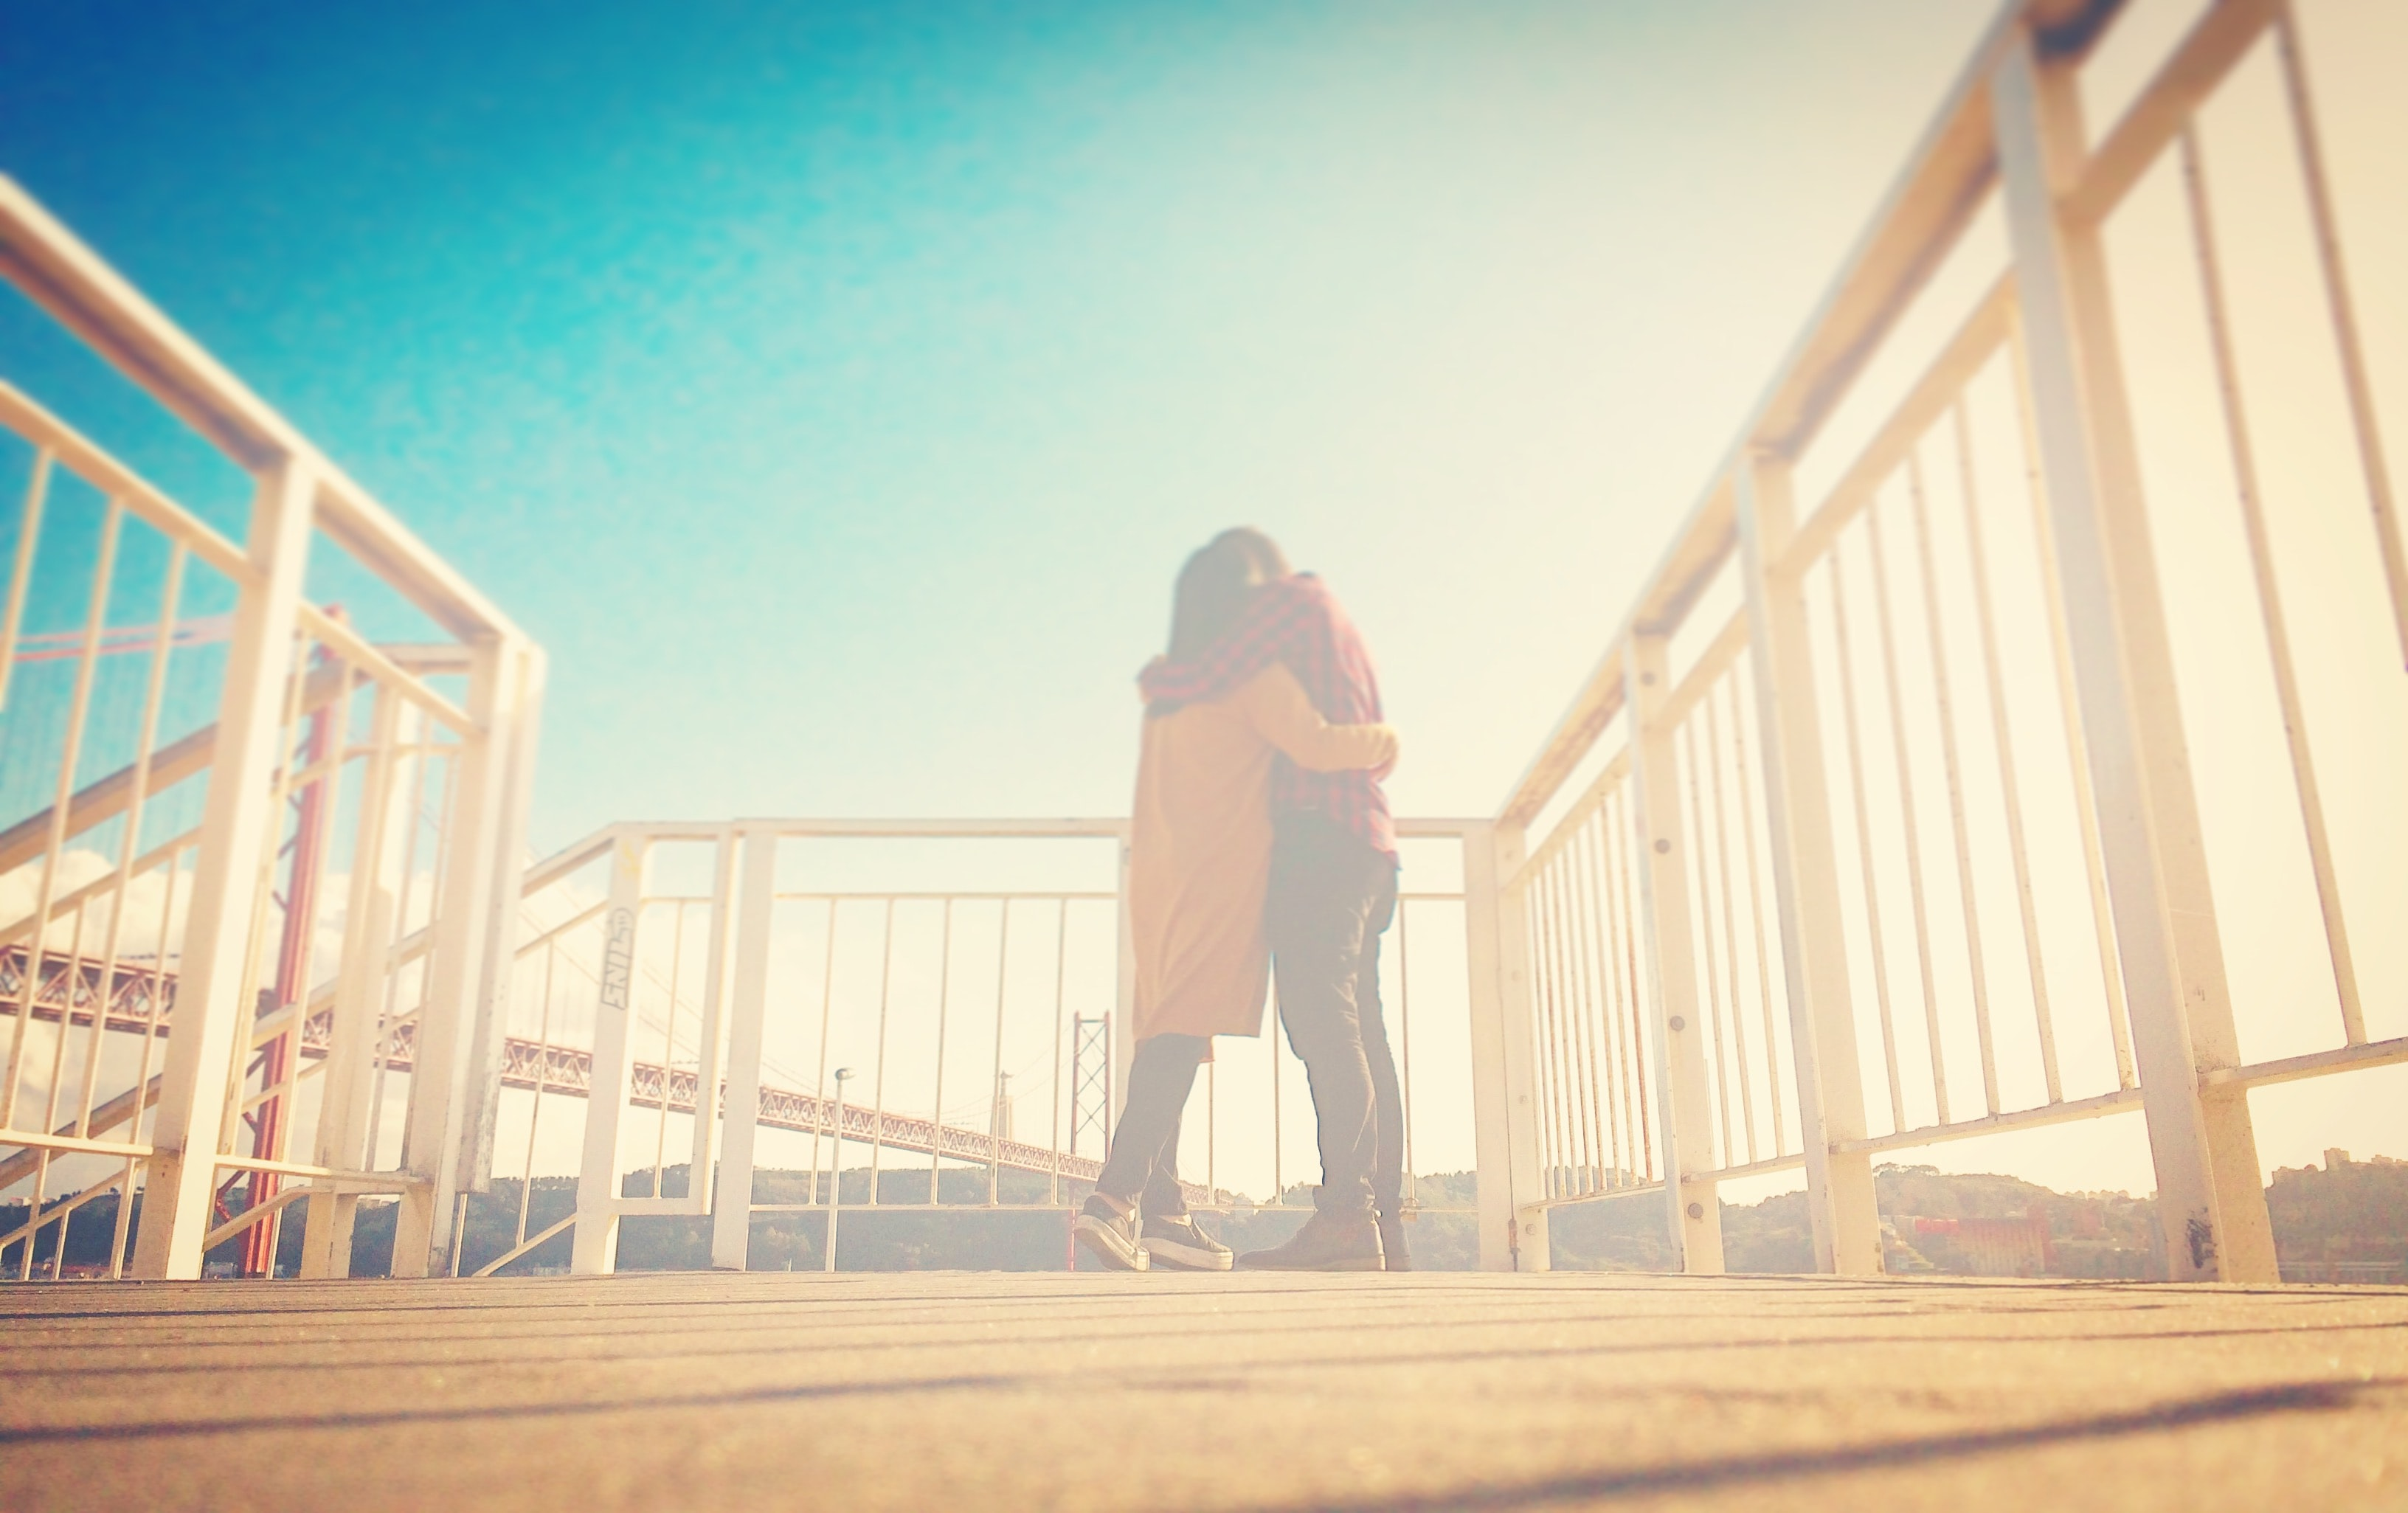 Soft light surrounds lovers on a boardwalk landing